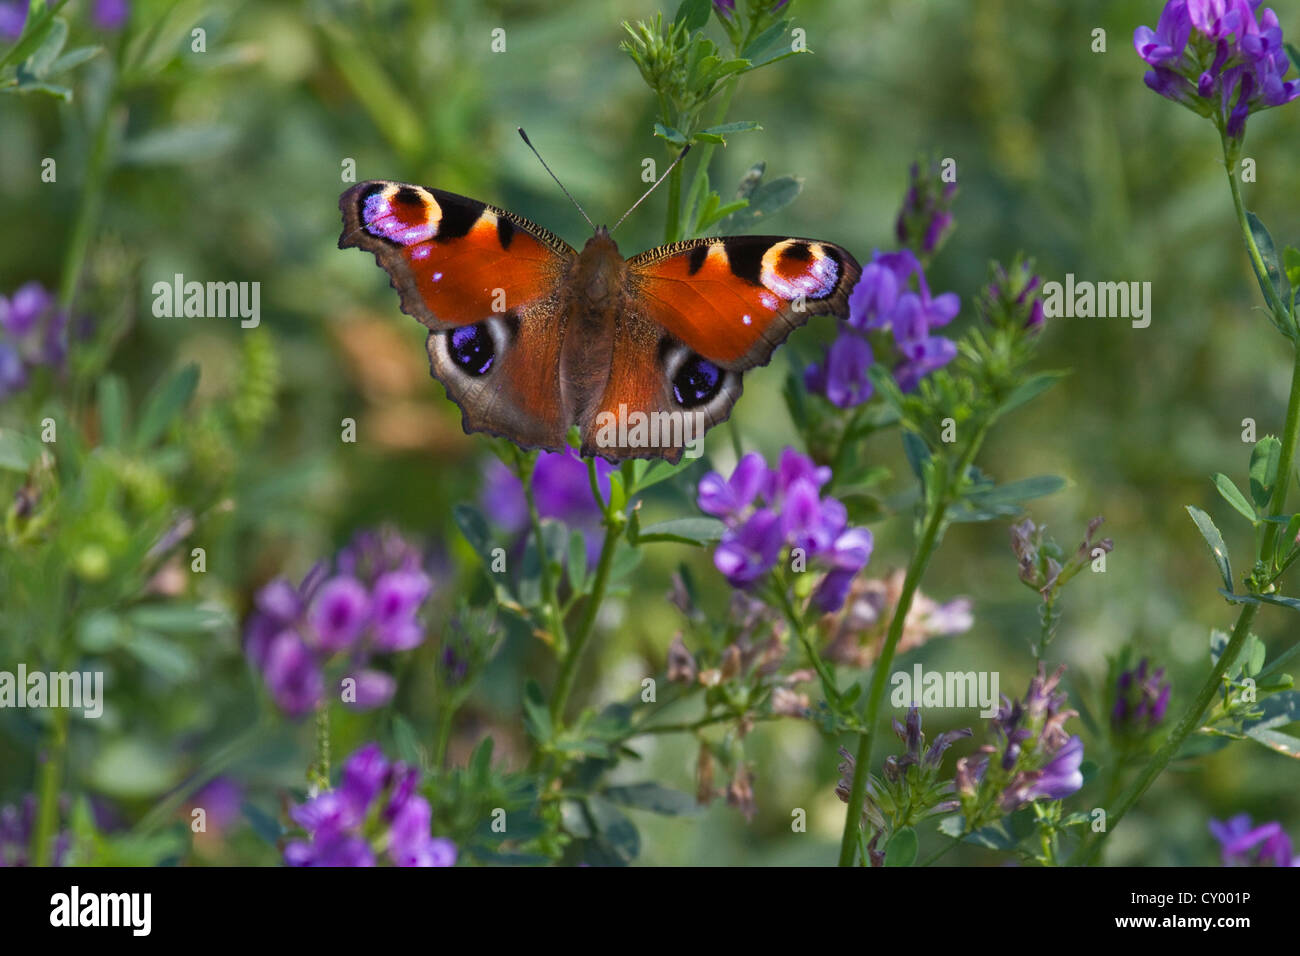 European Peacock butterfly (Aglais io / Inachis io) on wildflowers in meadow - Stock Image